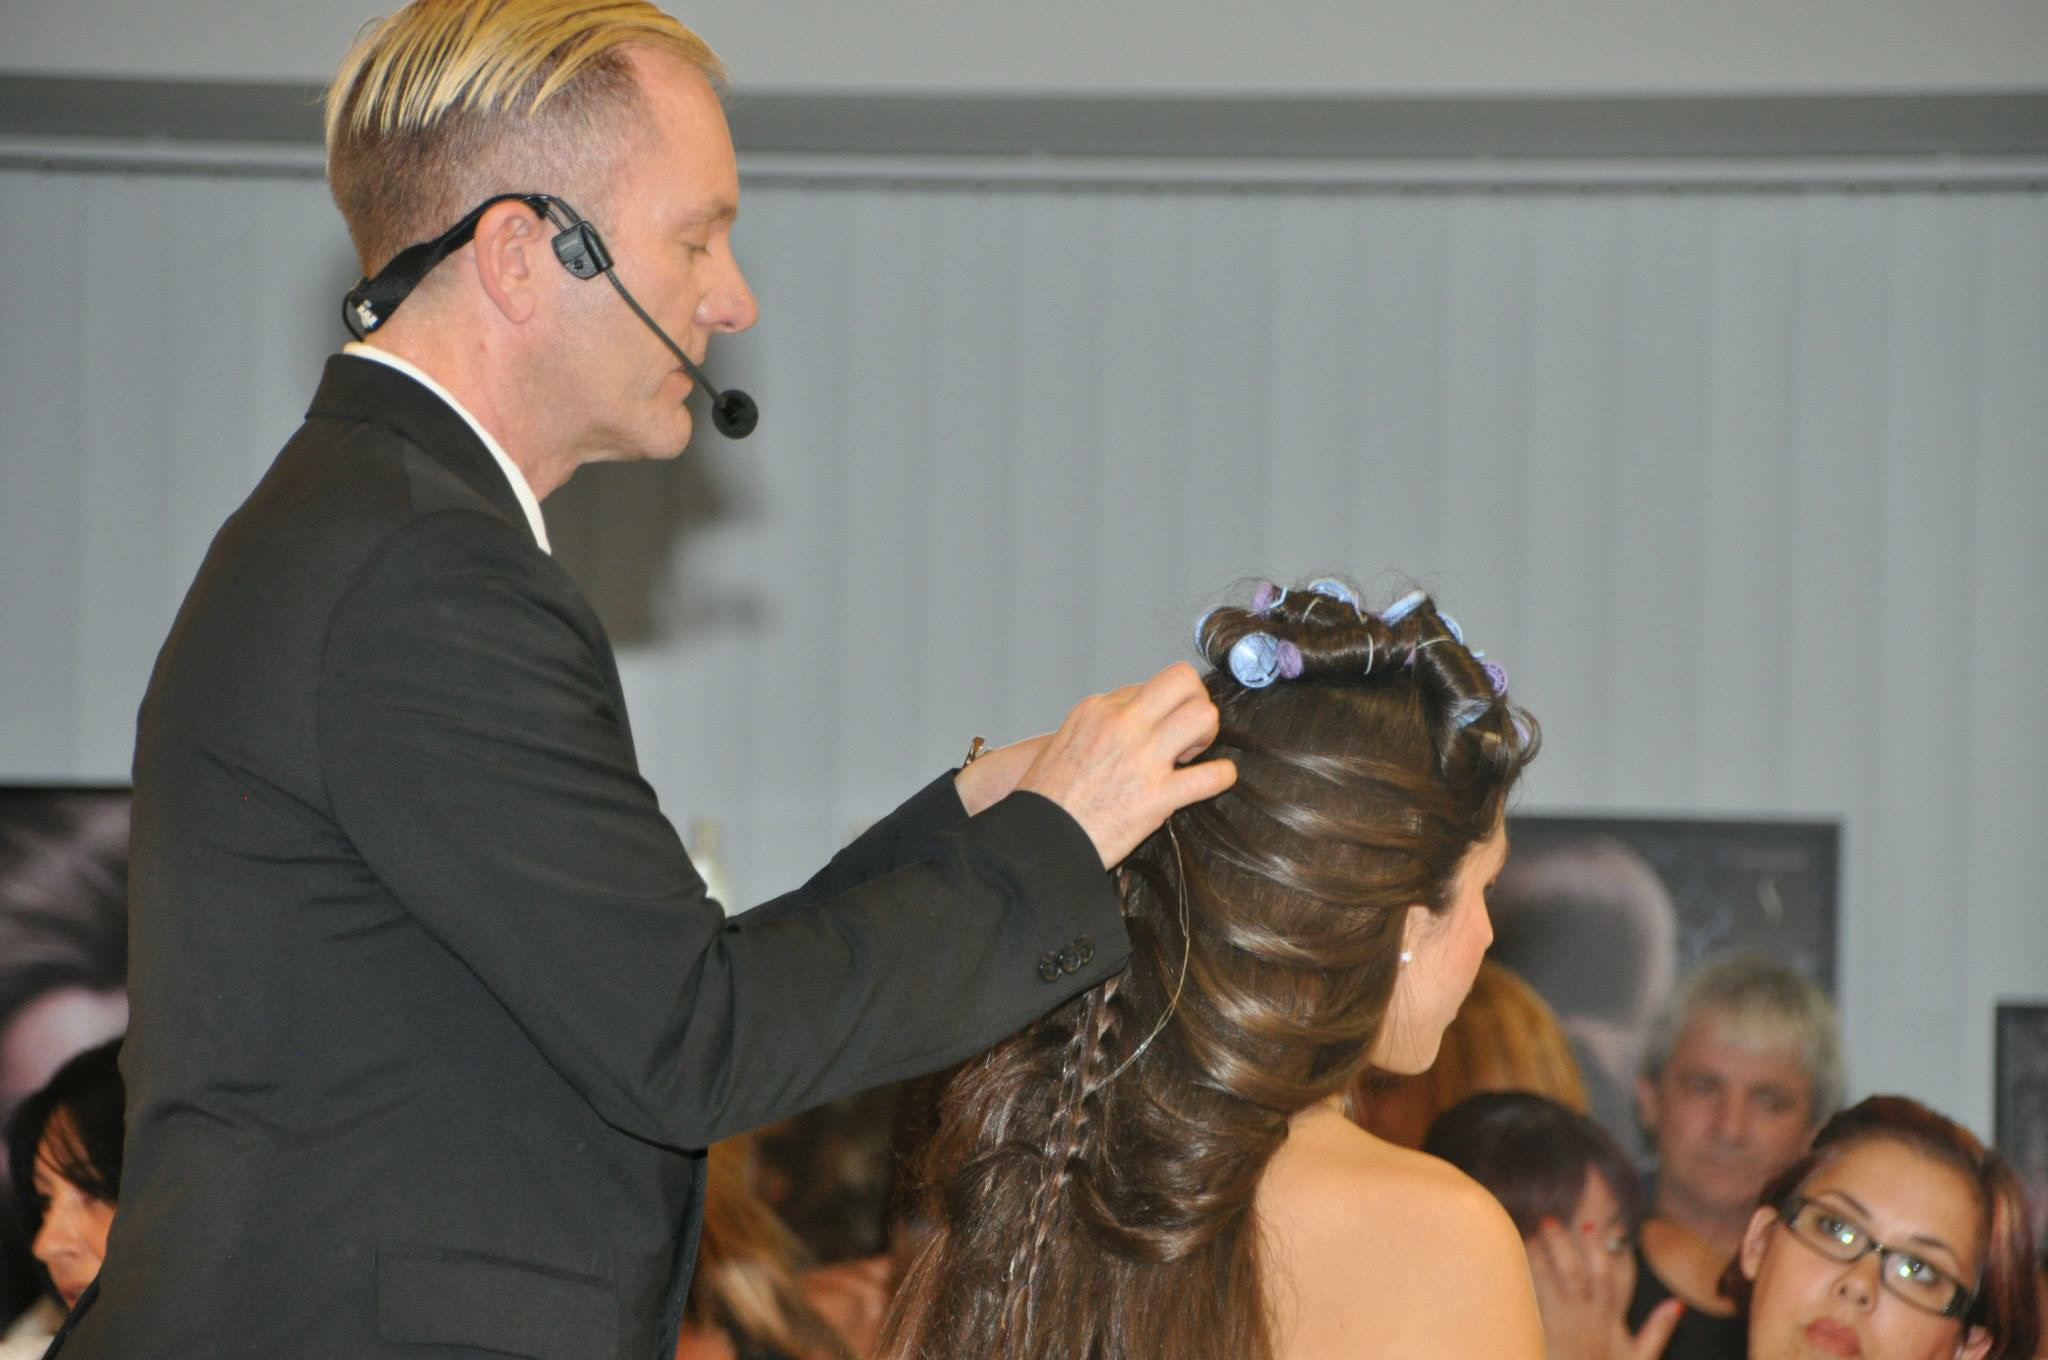 Steep by Step education sharing new and classic looks to take you from the salon to  the set,stage or photoshoot!